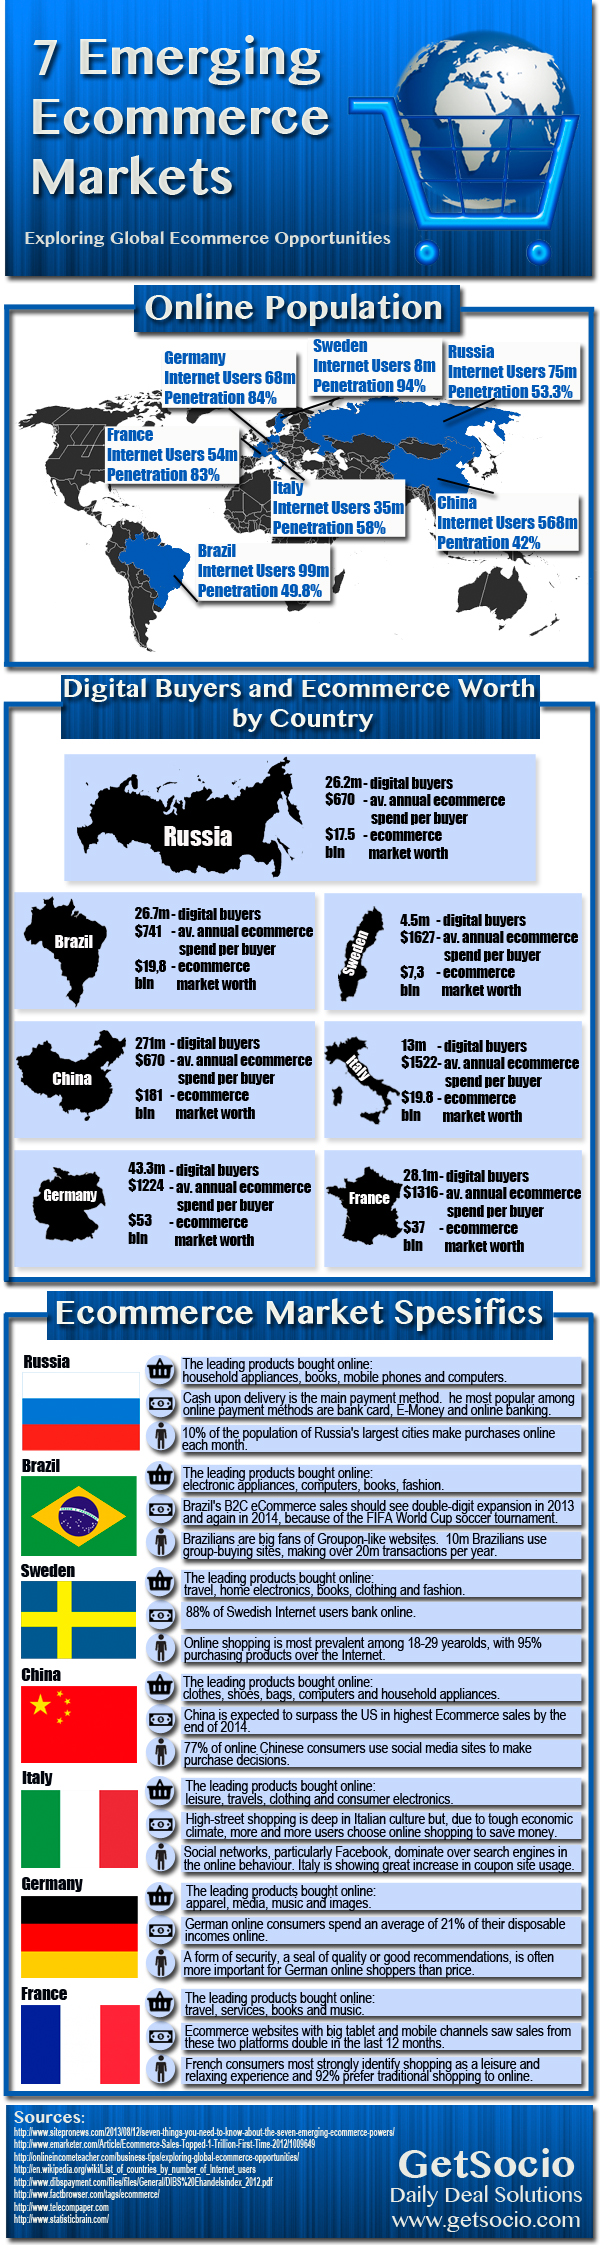 http://thumbnails.visually.netdna-cdn.com/7-emerging-ecommerce-markets_52136ded46536.jpg